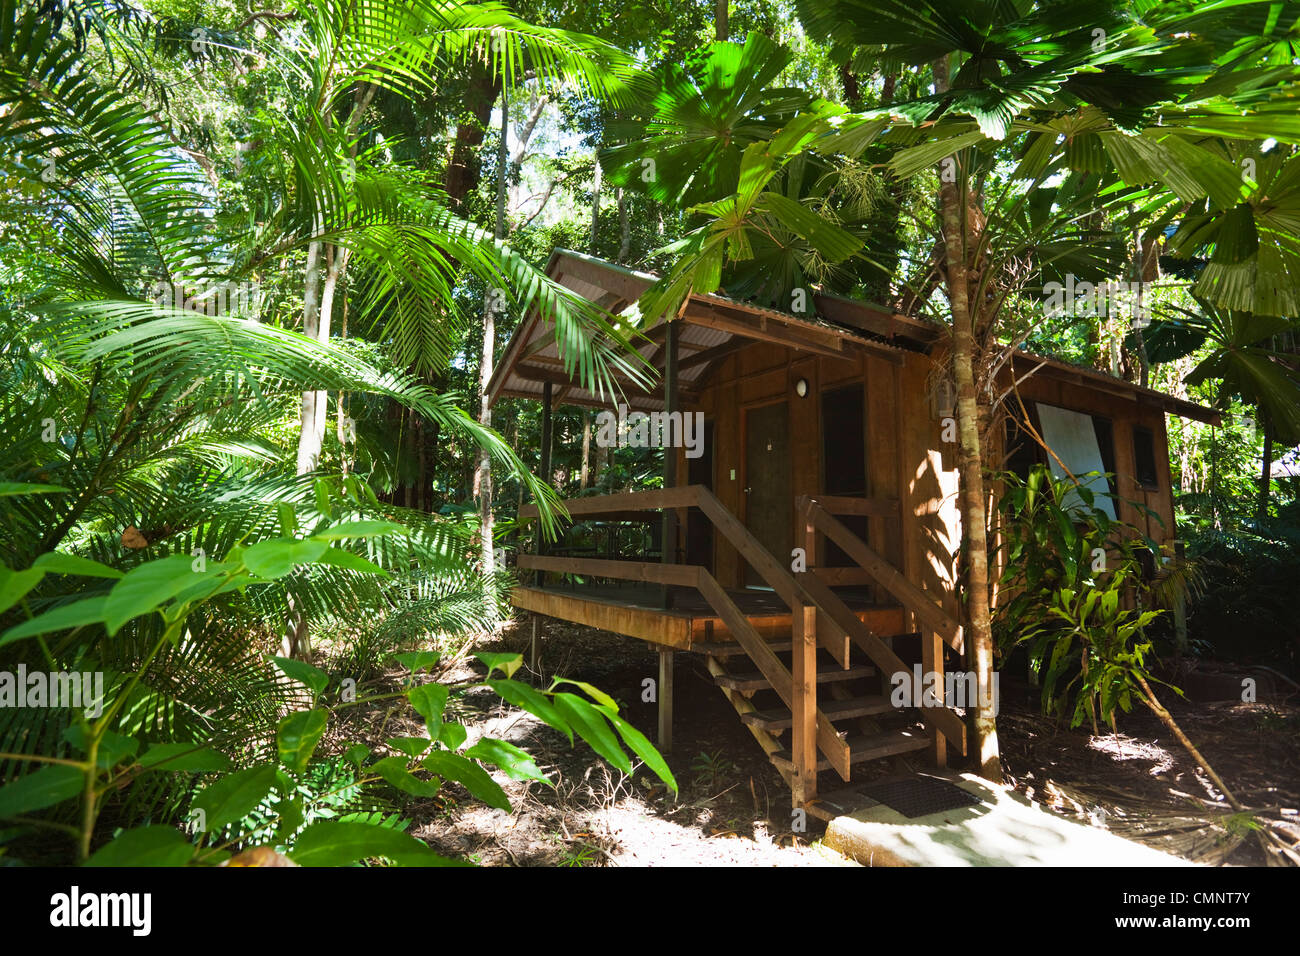 Cabine au PK's Rainforest Jungle Village. Cape Tribulation, parc national de Daintree, Queensland, Australie Photo Stock